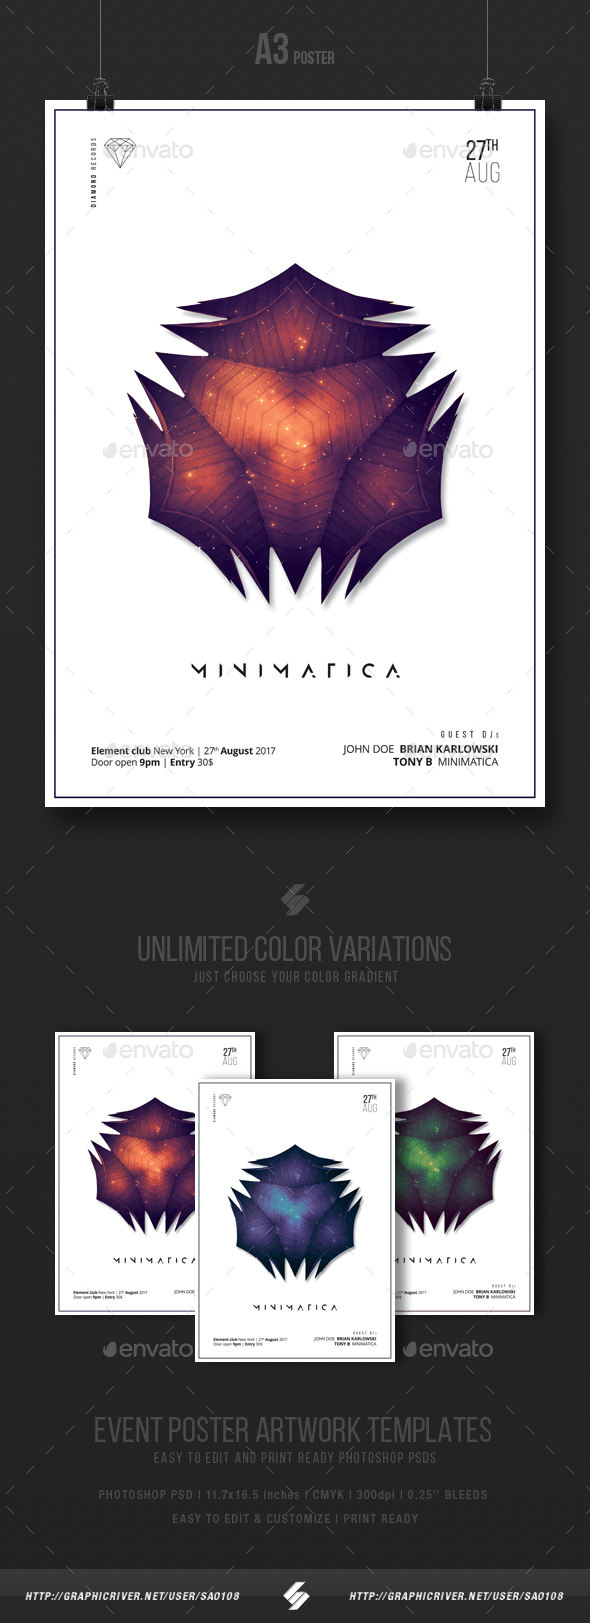 Minimatica - Minimal Party Flyer / Poster Template A3 - Clubs & Parties Events